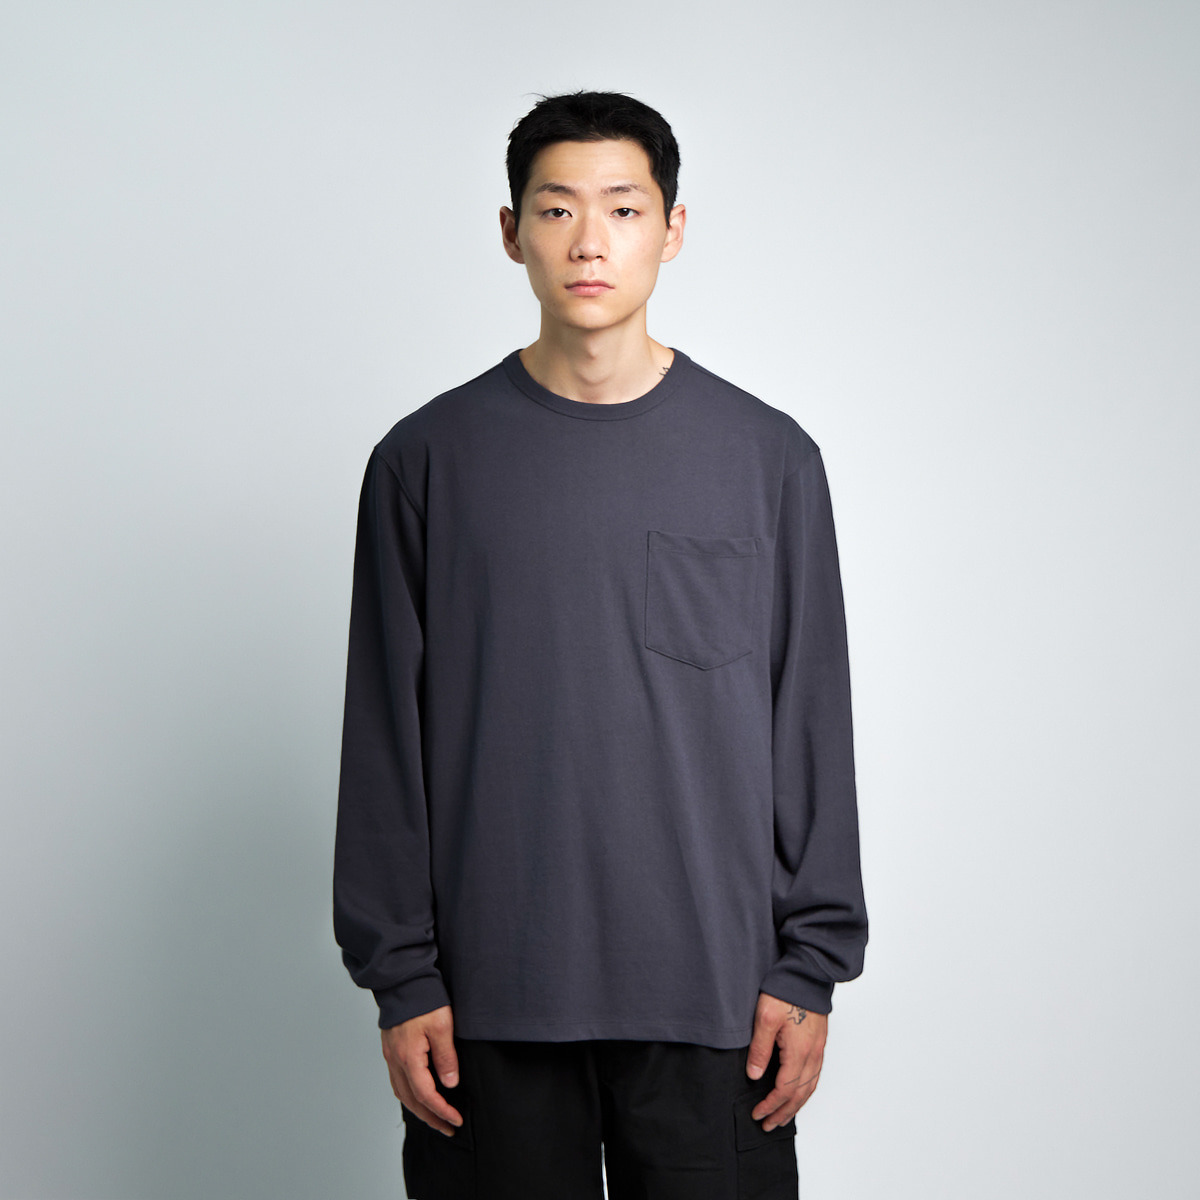 ONE POCKET L/S T-SHIRT (NAVY)